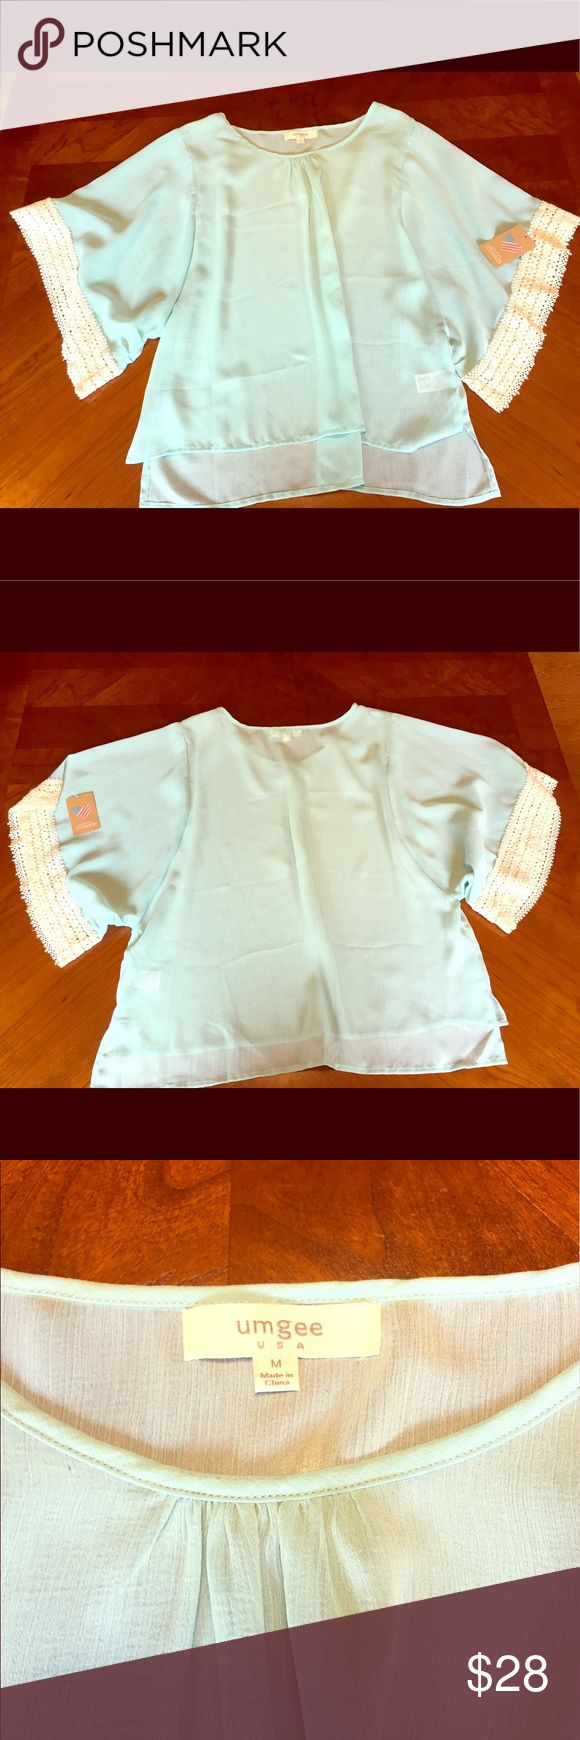 NEW American Threads: Stylish Mint Blouse Stylish mint Blouse from American Threads.  Cream designed sleeves. Size medium American Threads Tops Blouses